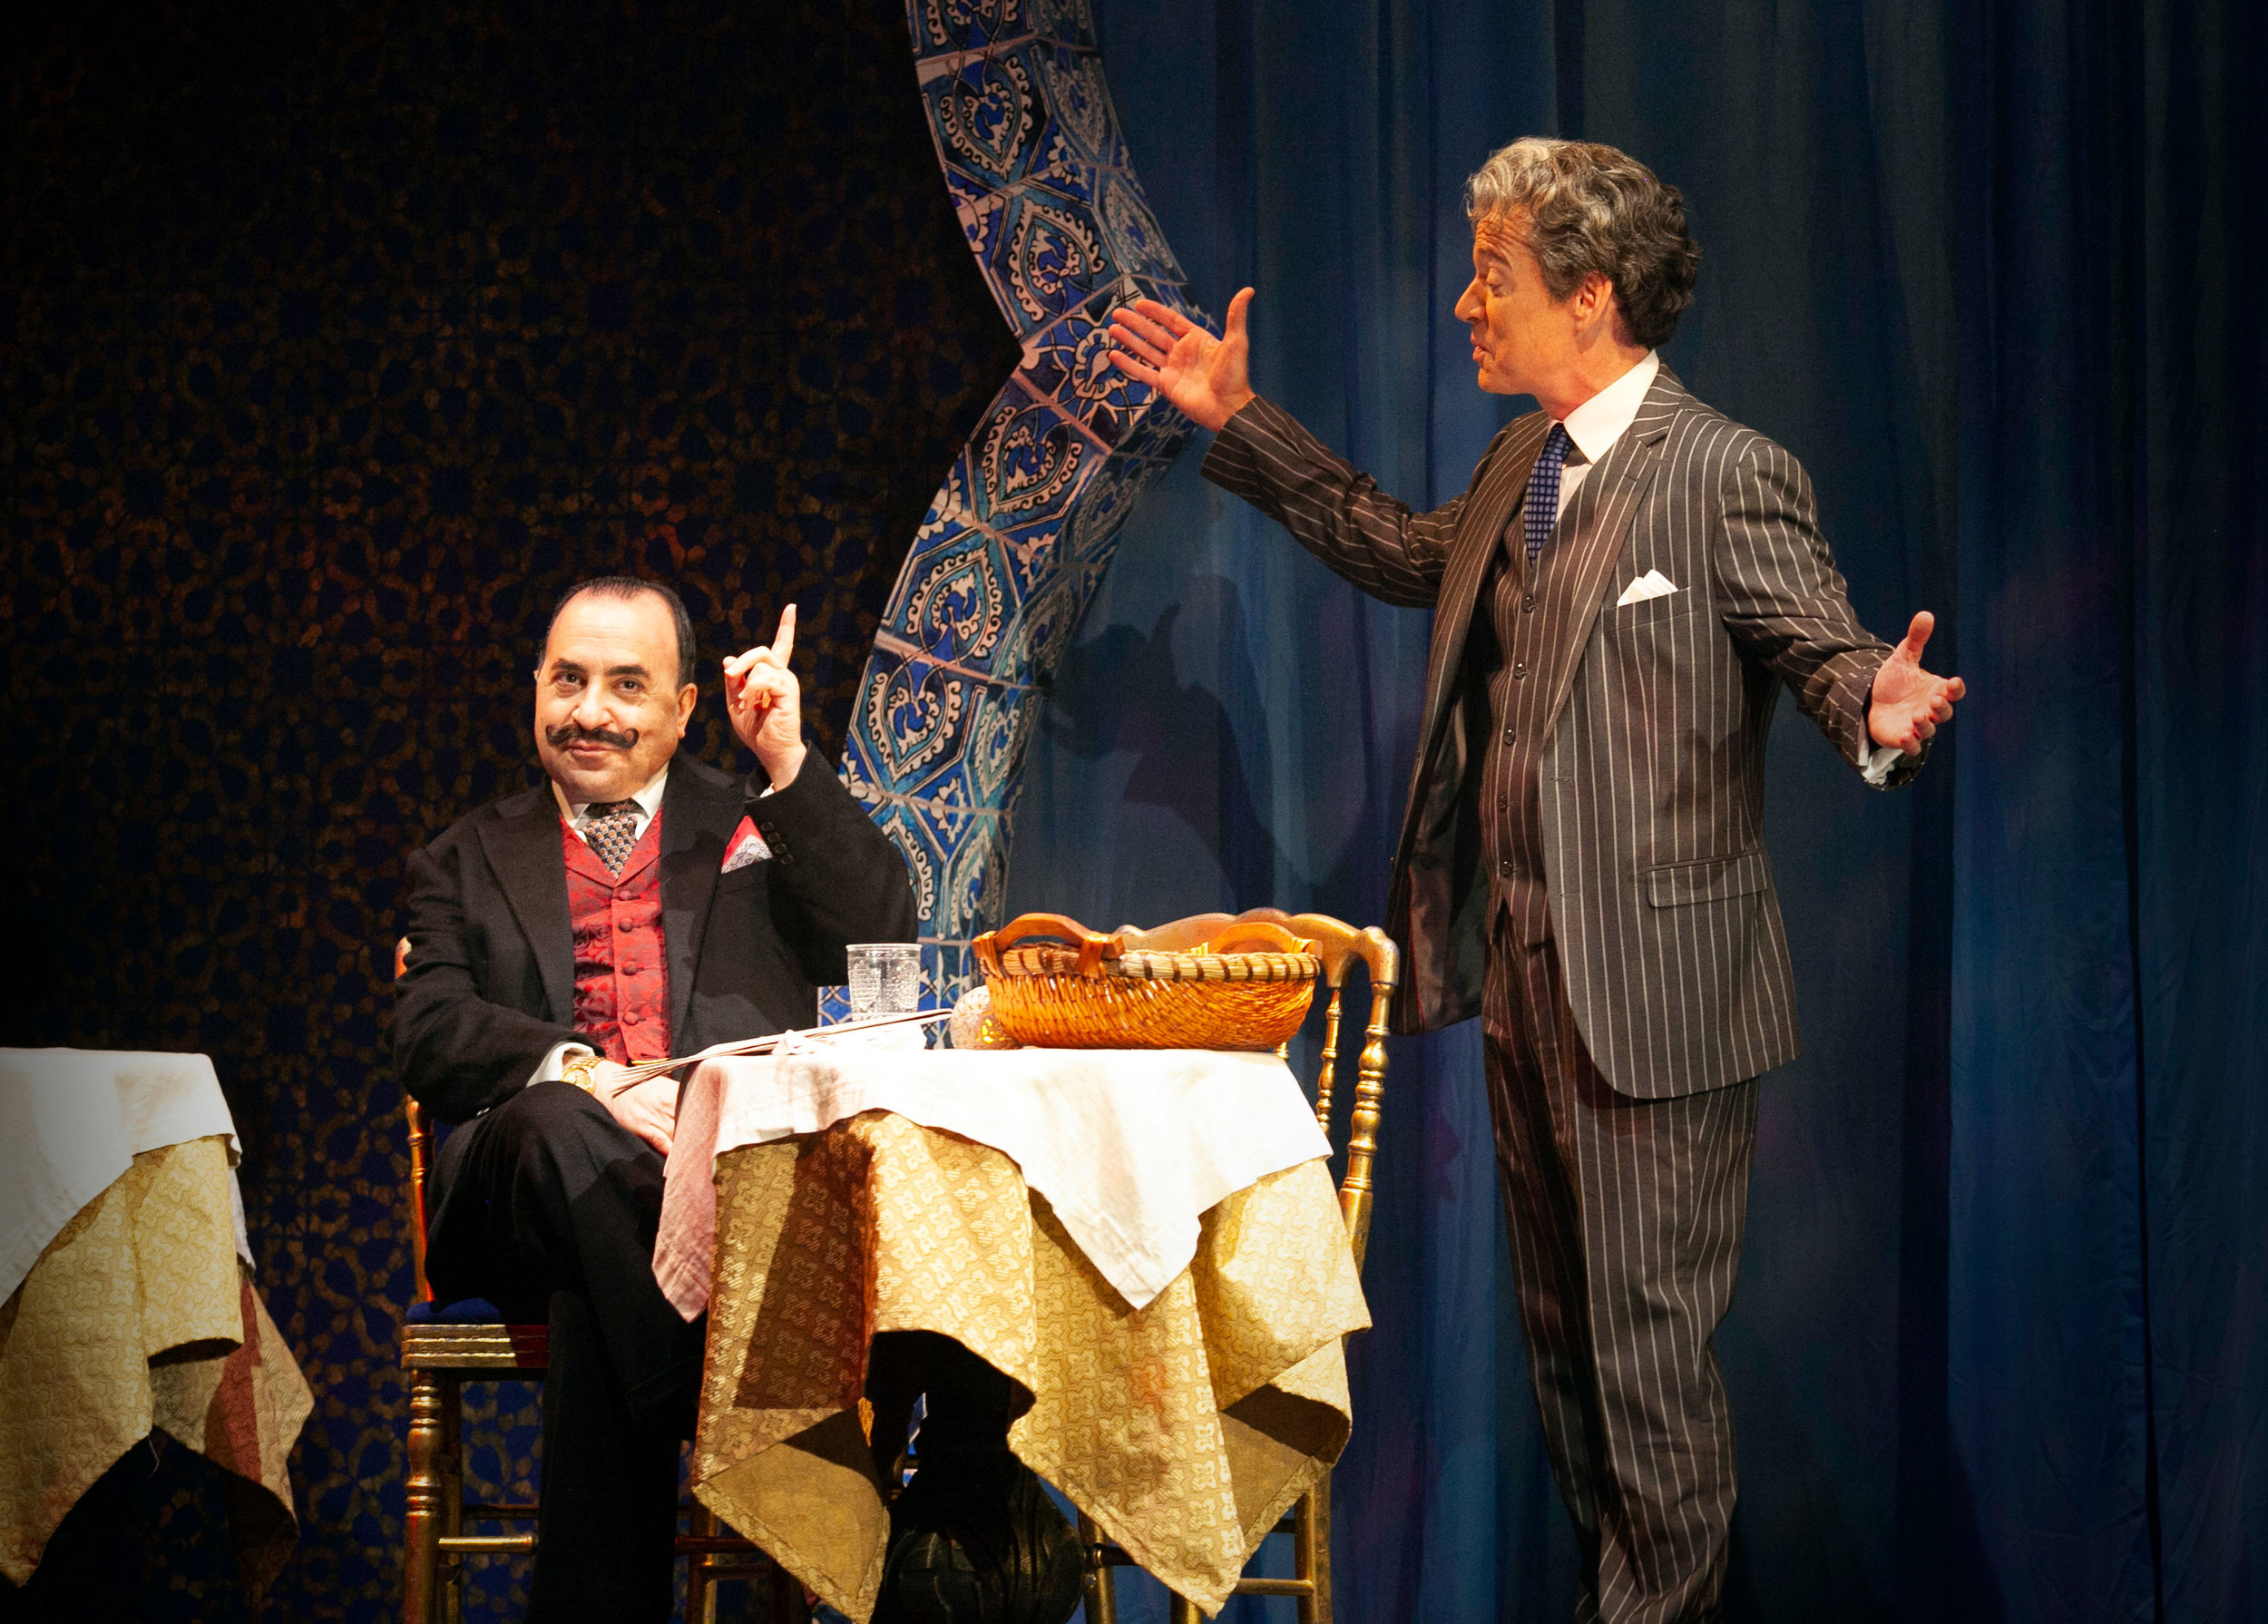 Steven Rattazzi and Christopher Gurr in Agatha Christie's Murder on the Orient Express at the Ogunquit Playhouse. Photo by Jay Goldsmith